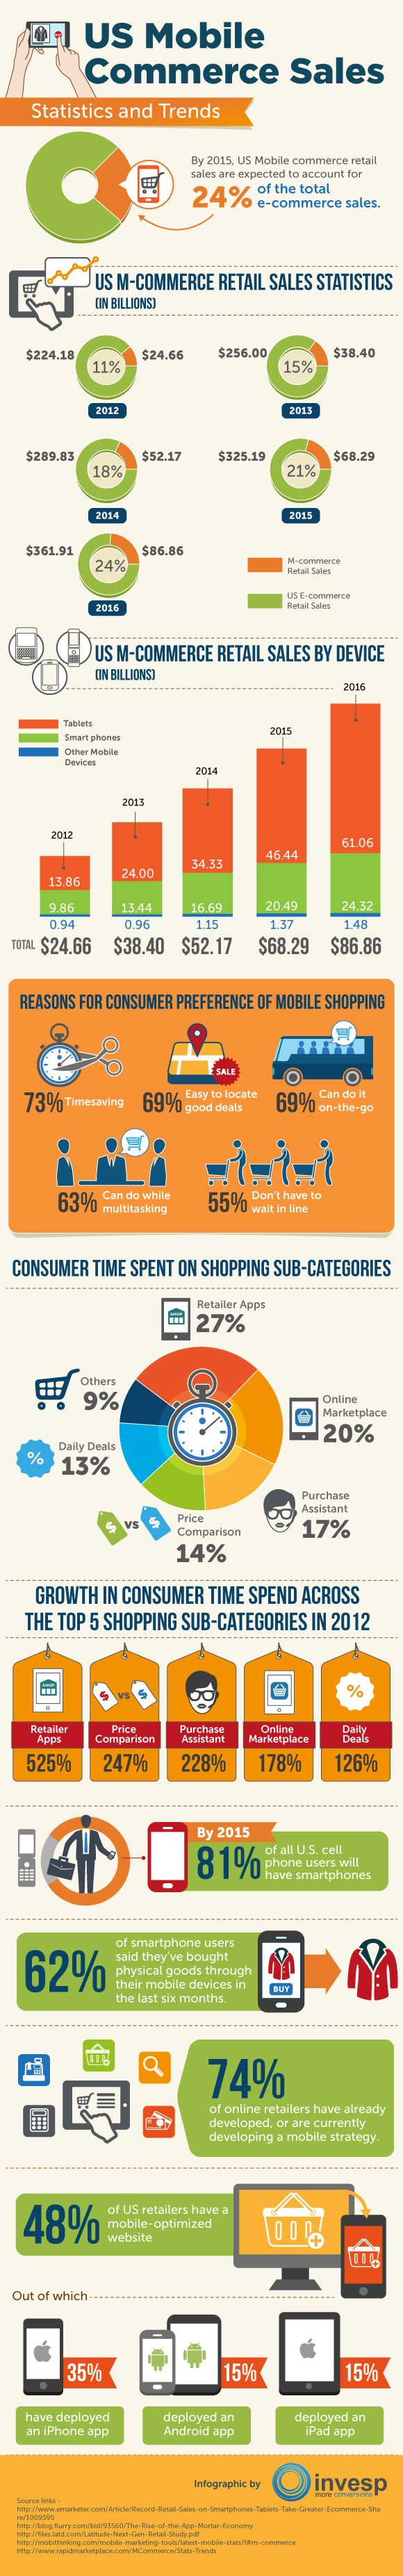 US Mobile Commerce Sales [INFOGRAPHIC]